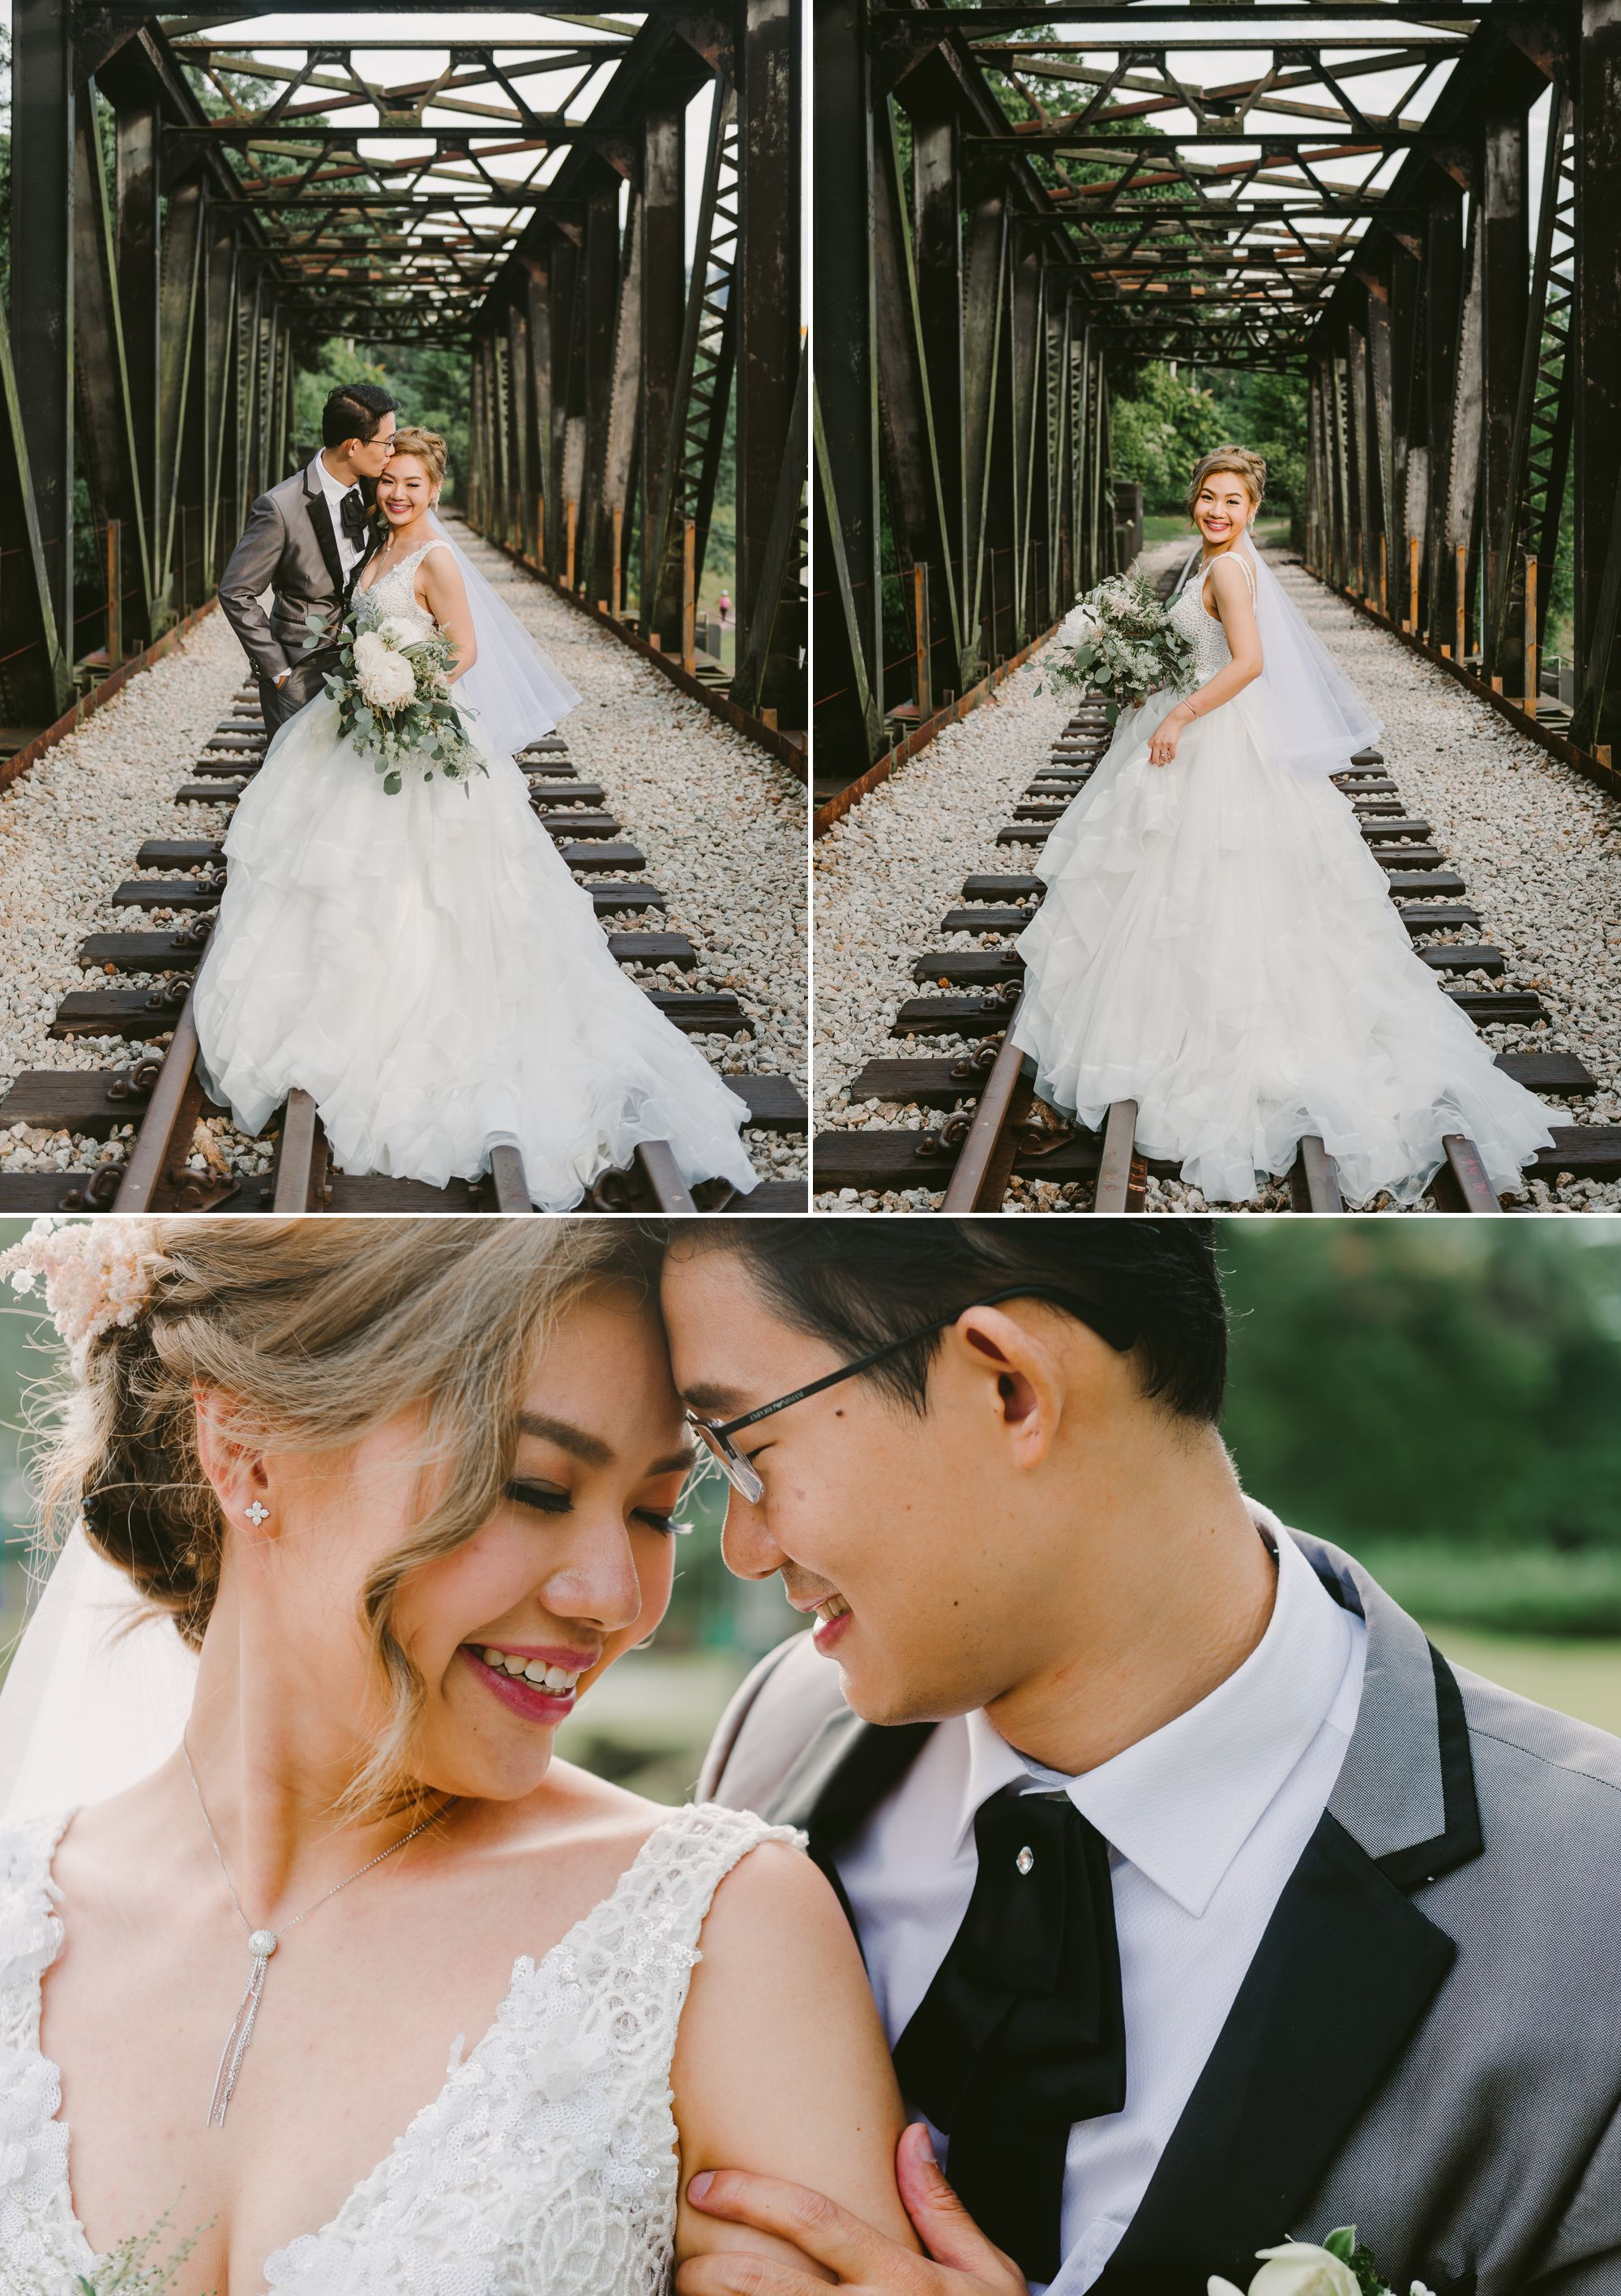 wedding_photographer_singapore 16.jpg